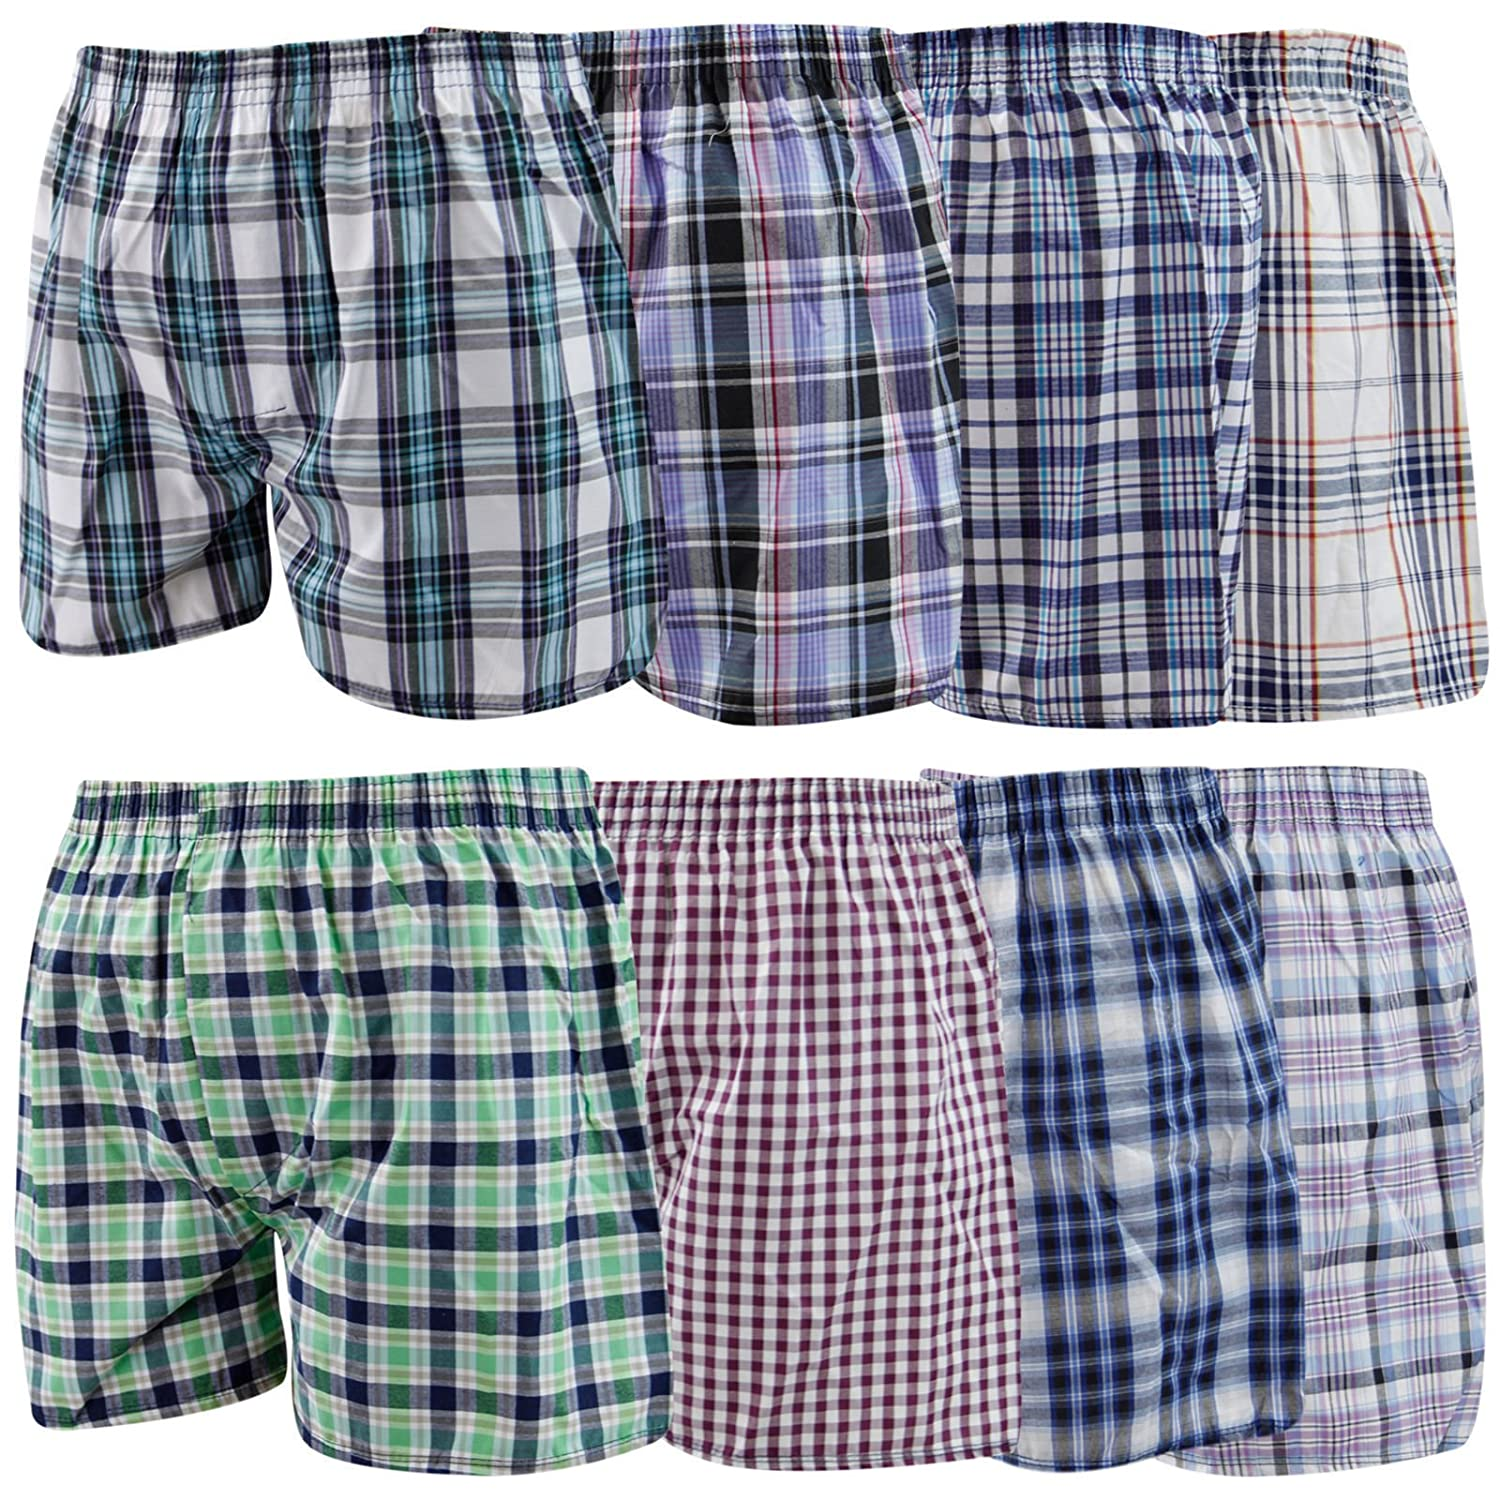 Fly 12 Mens Woven Boxer Shorts Loose Fit Poly Cotton Blend BoxersUnderwear 12 Pairs X Large 40-42 Waist Loose Boxers